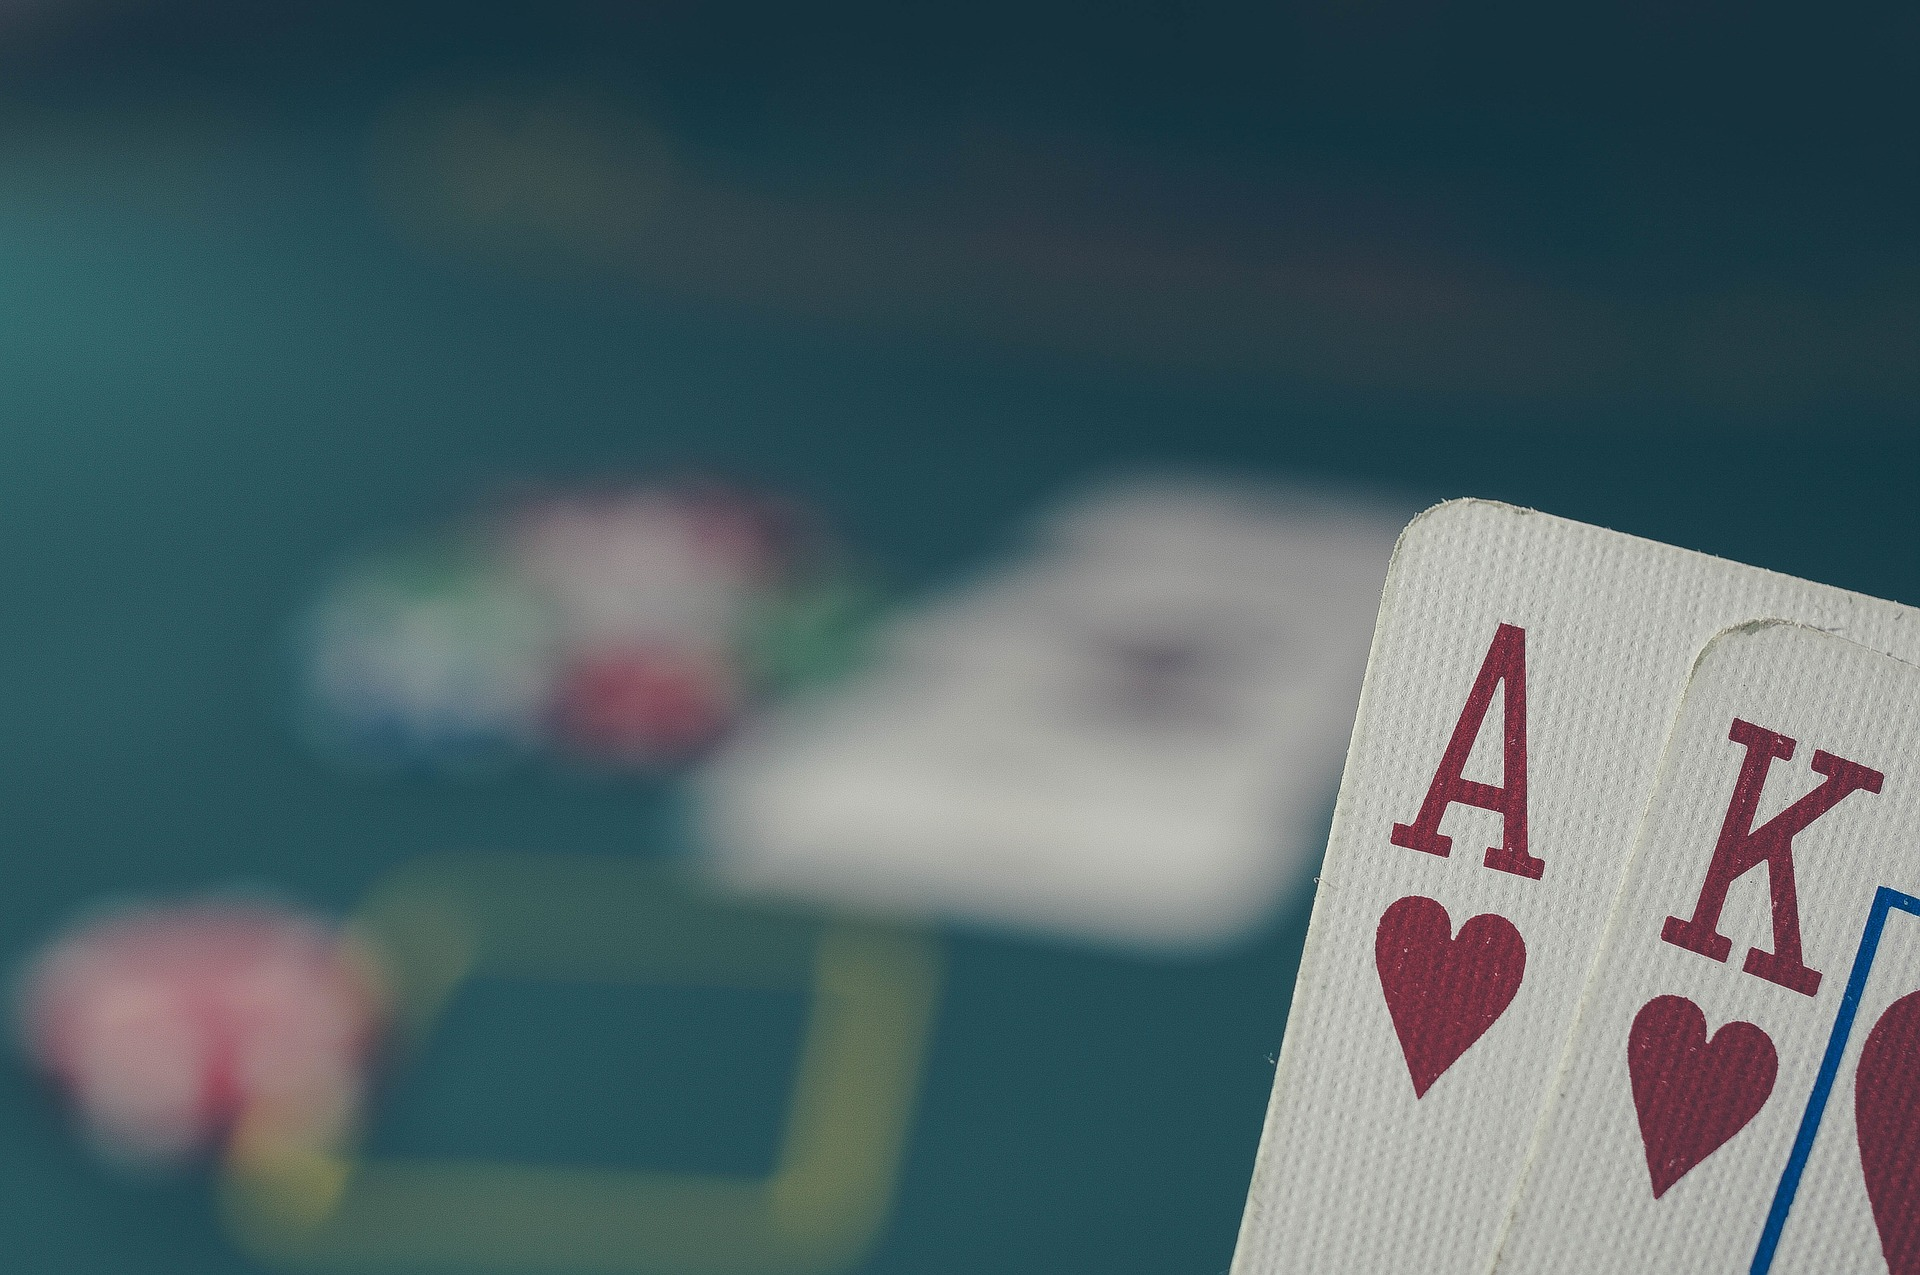 Playing poker can improve your negotiation skills, here's how. 1